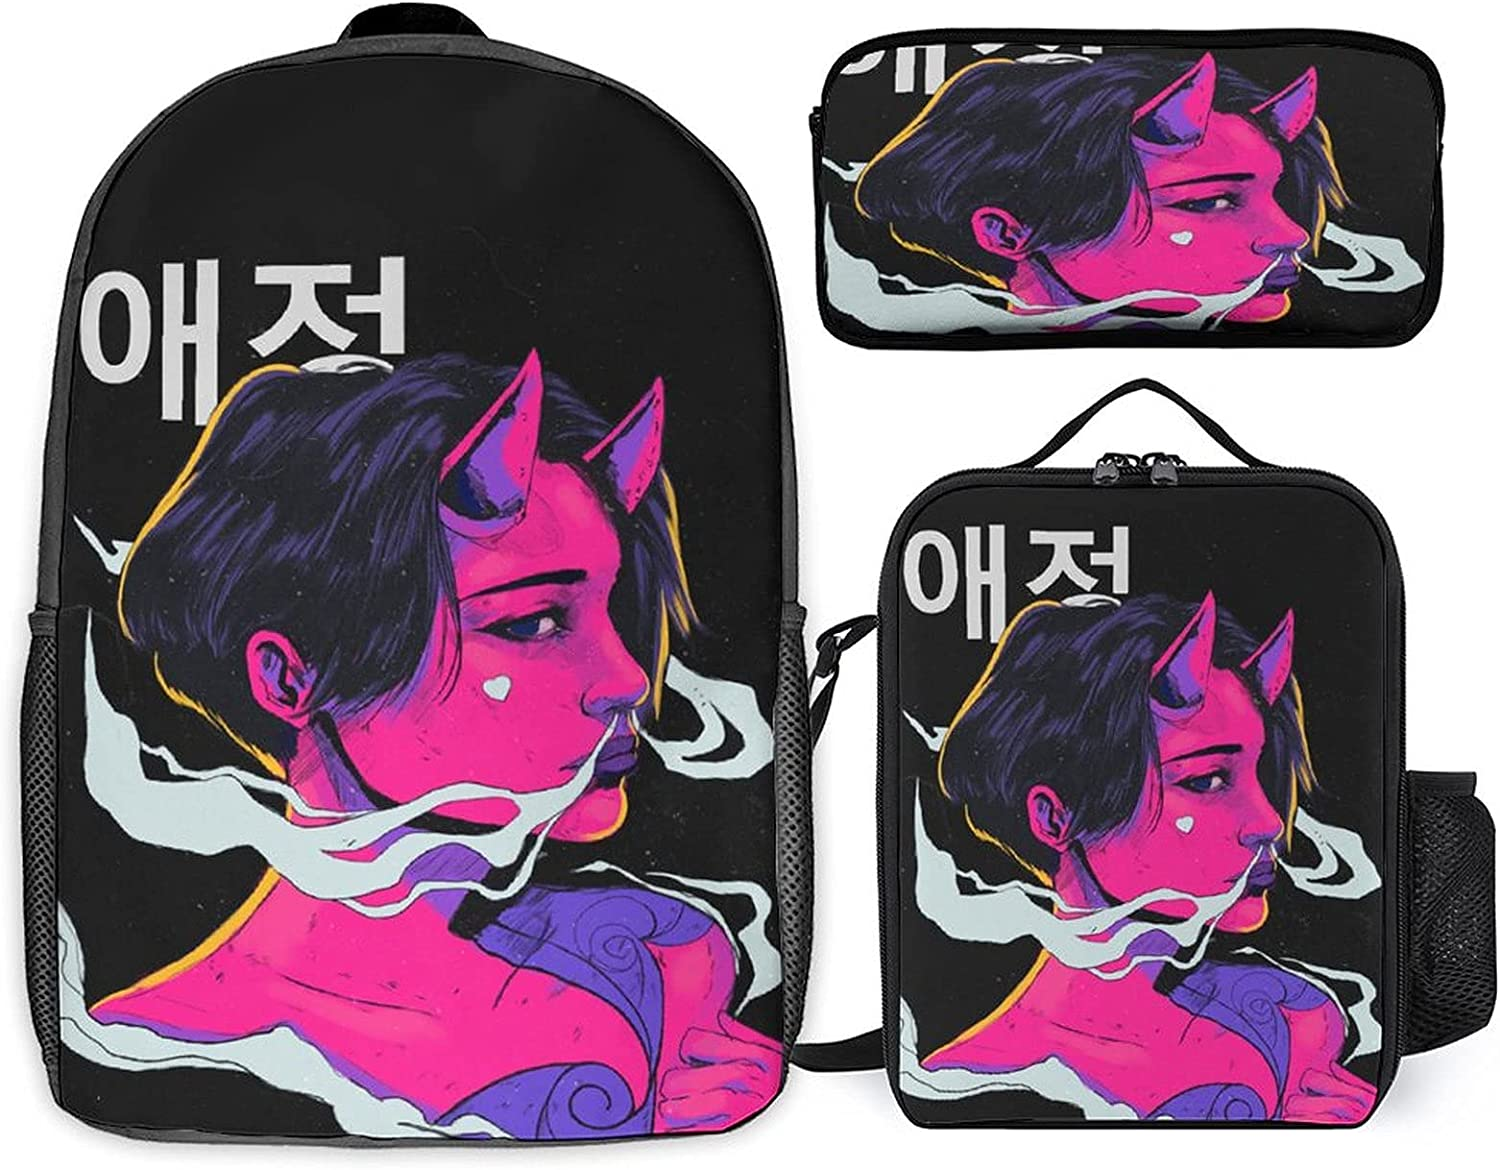 Stoner Art Three-piece set 4 years warranty of + schoolbag st student Directly managed store